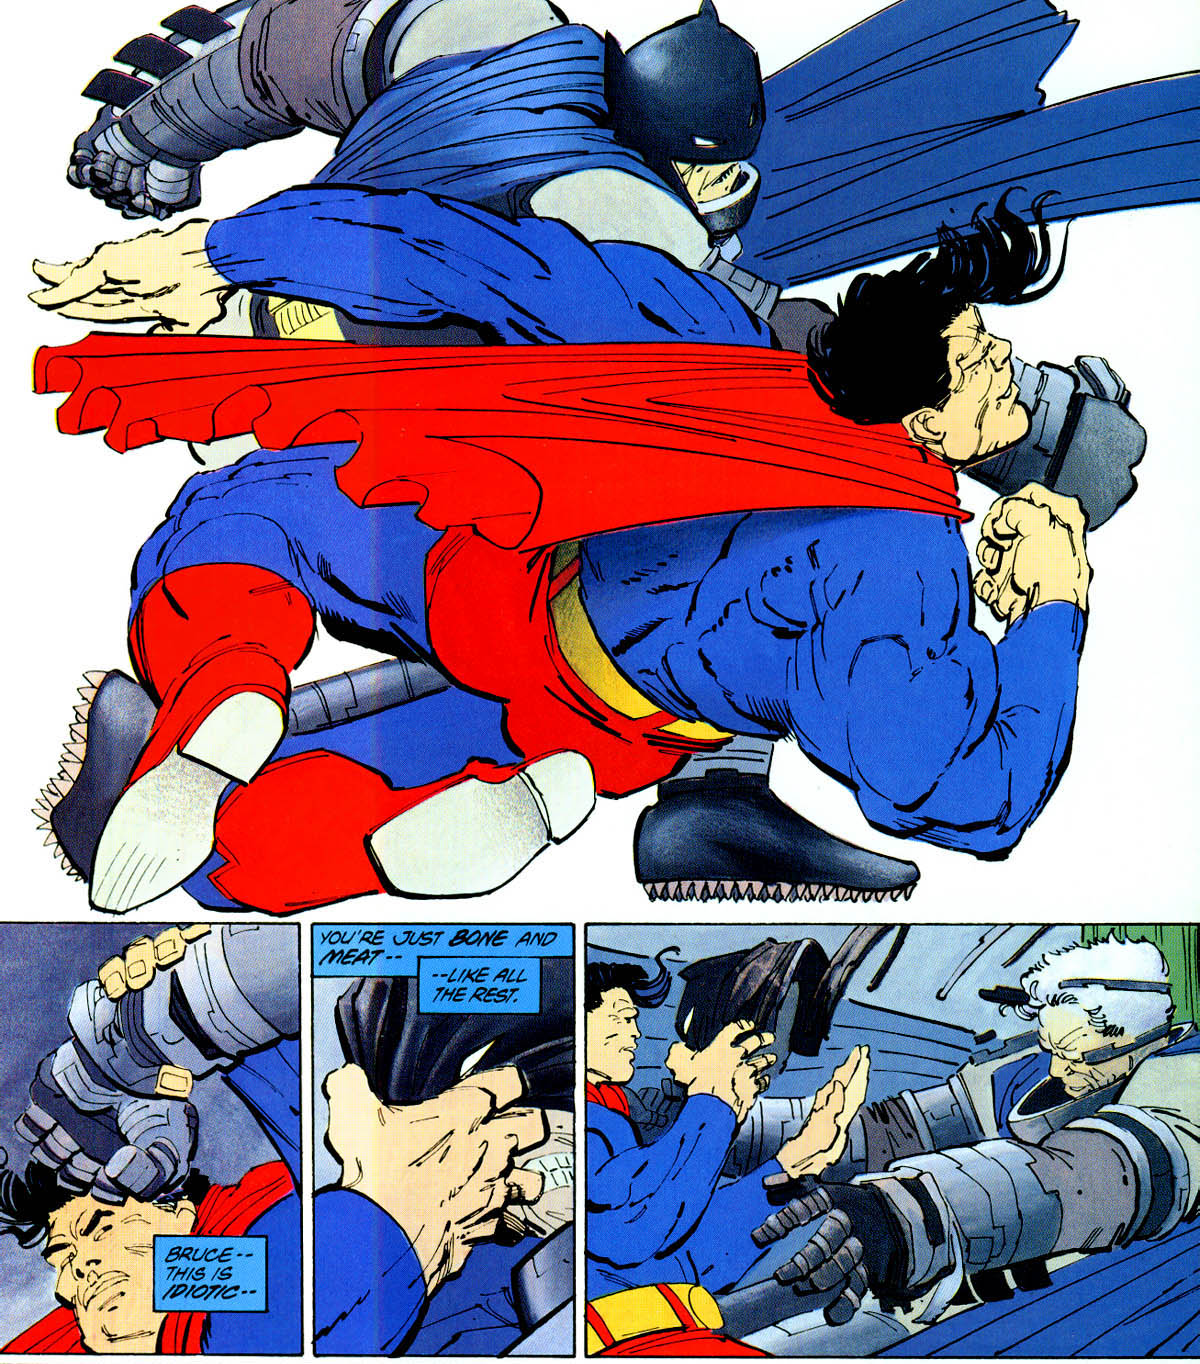 SPOILER-ISH NEWS: Who Throws the First Punch in Batman v. Superman: Dawn of Justice